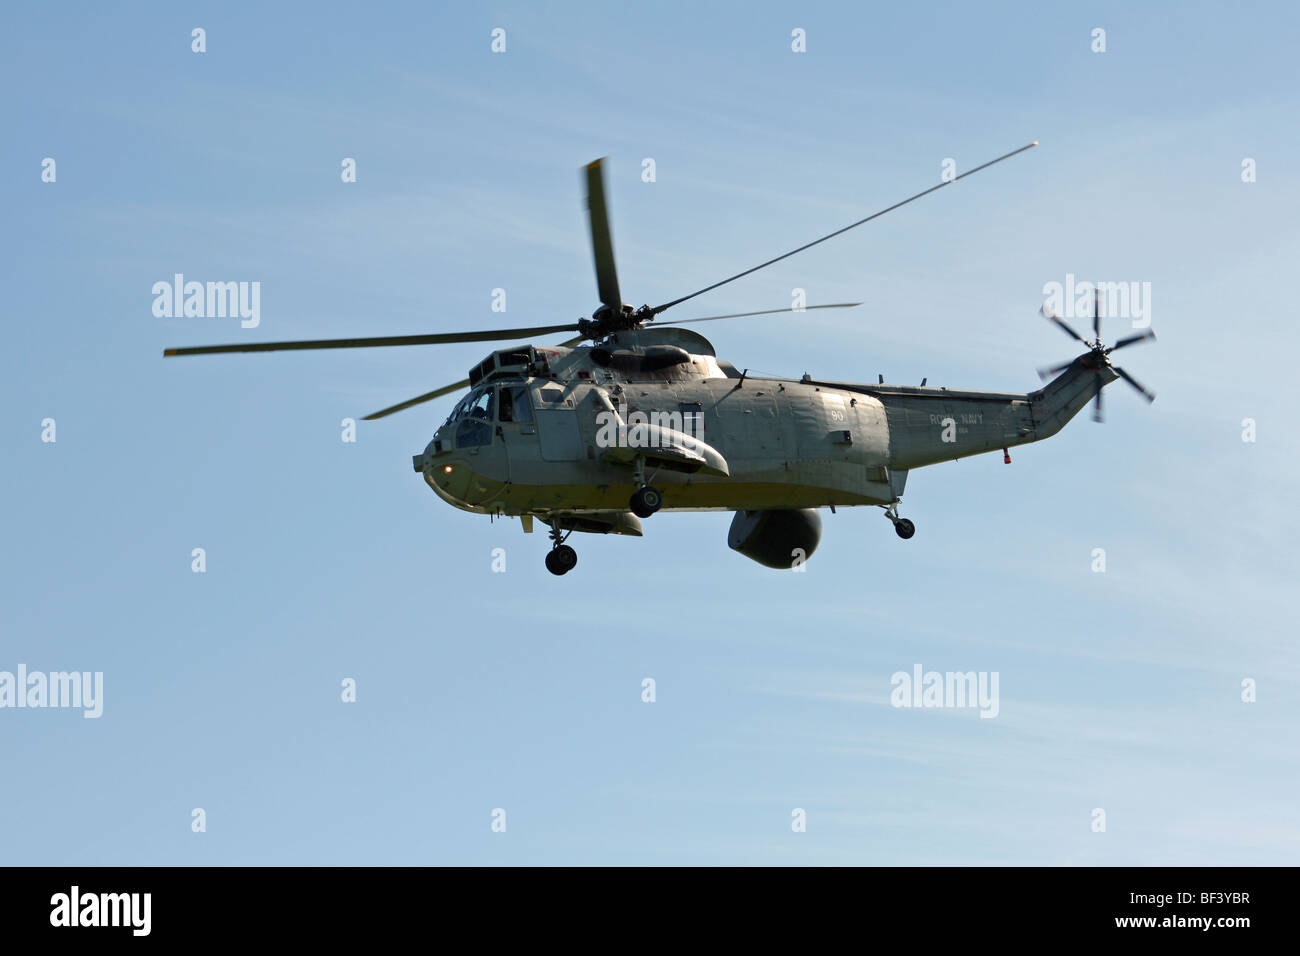 The Sea King helicopter is manufactured by AgustaWestland in the UK. - Stock Image